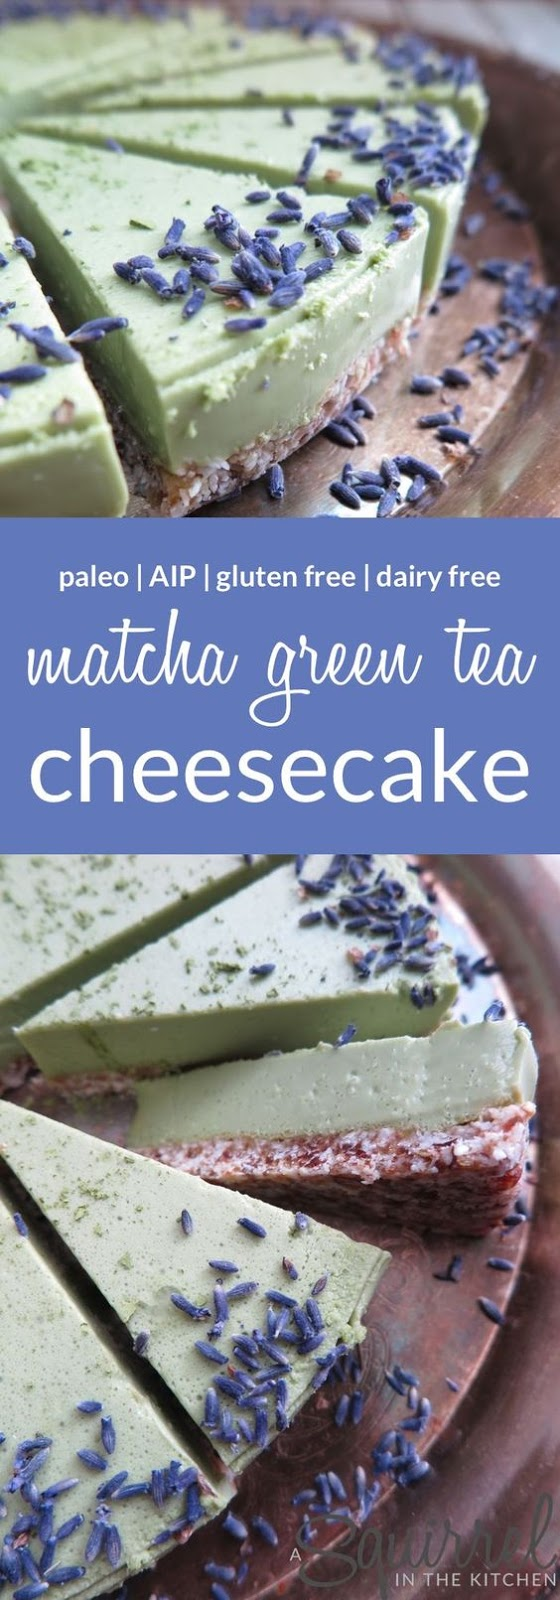 NO-BAKE MATCHA GREEN TEA CHEESECAKE [DAIRY-FREE-GLUTEN-FREE-PALEO-AIP]